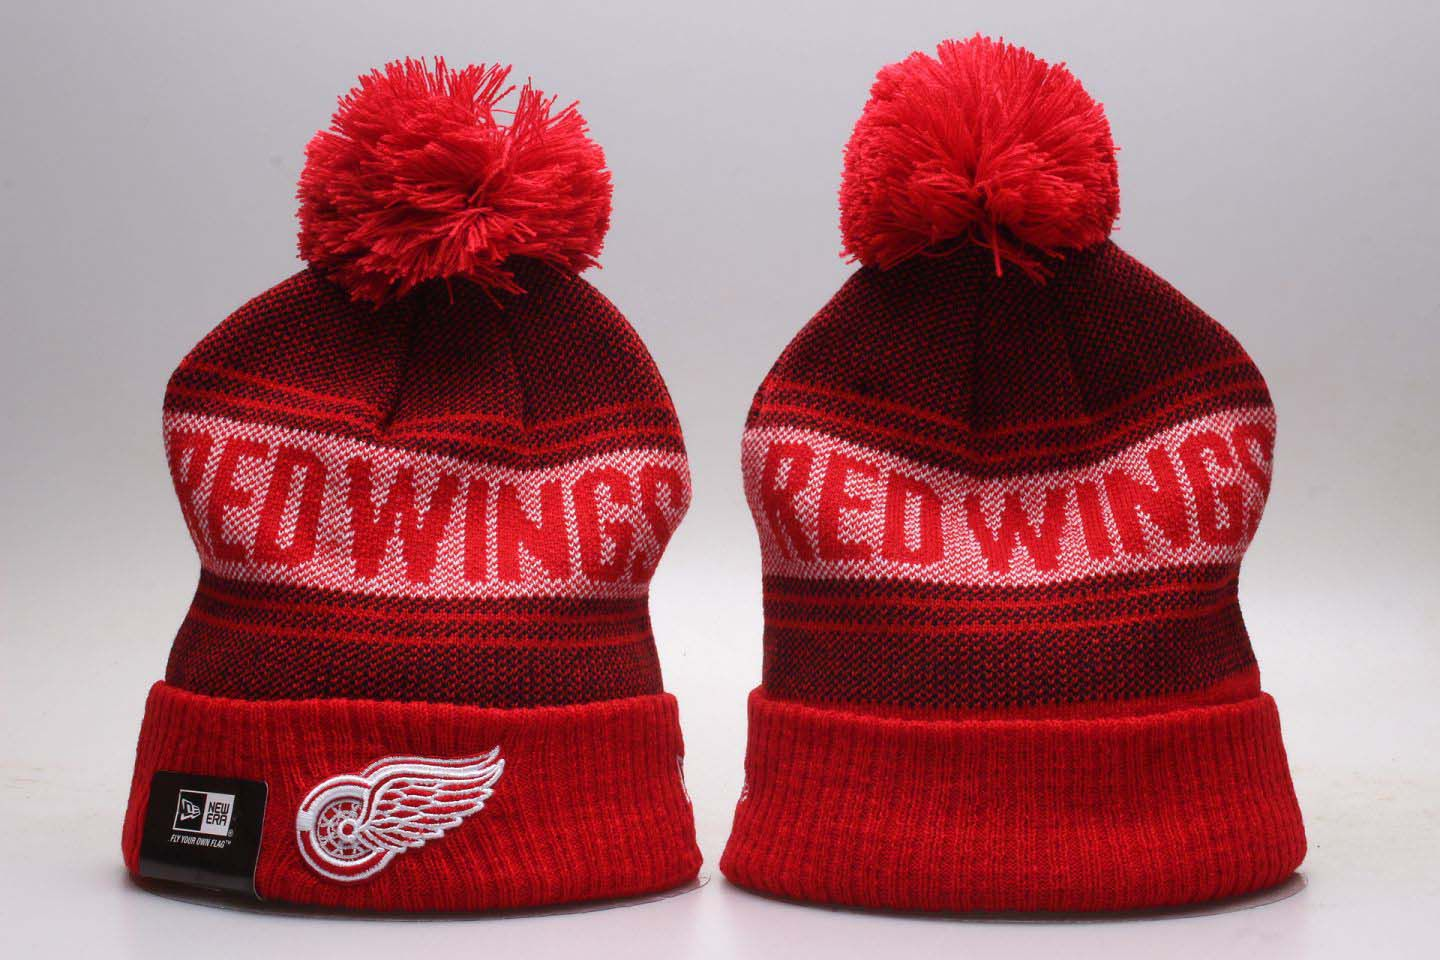 NHL Detroit Red Wings Beanie hot hat